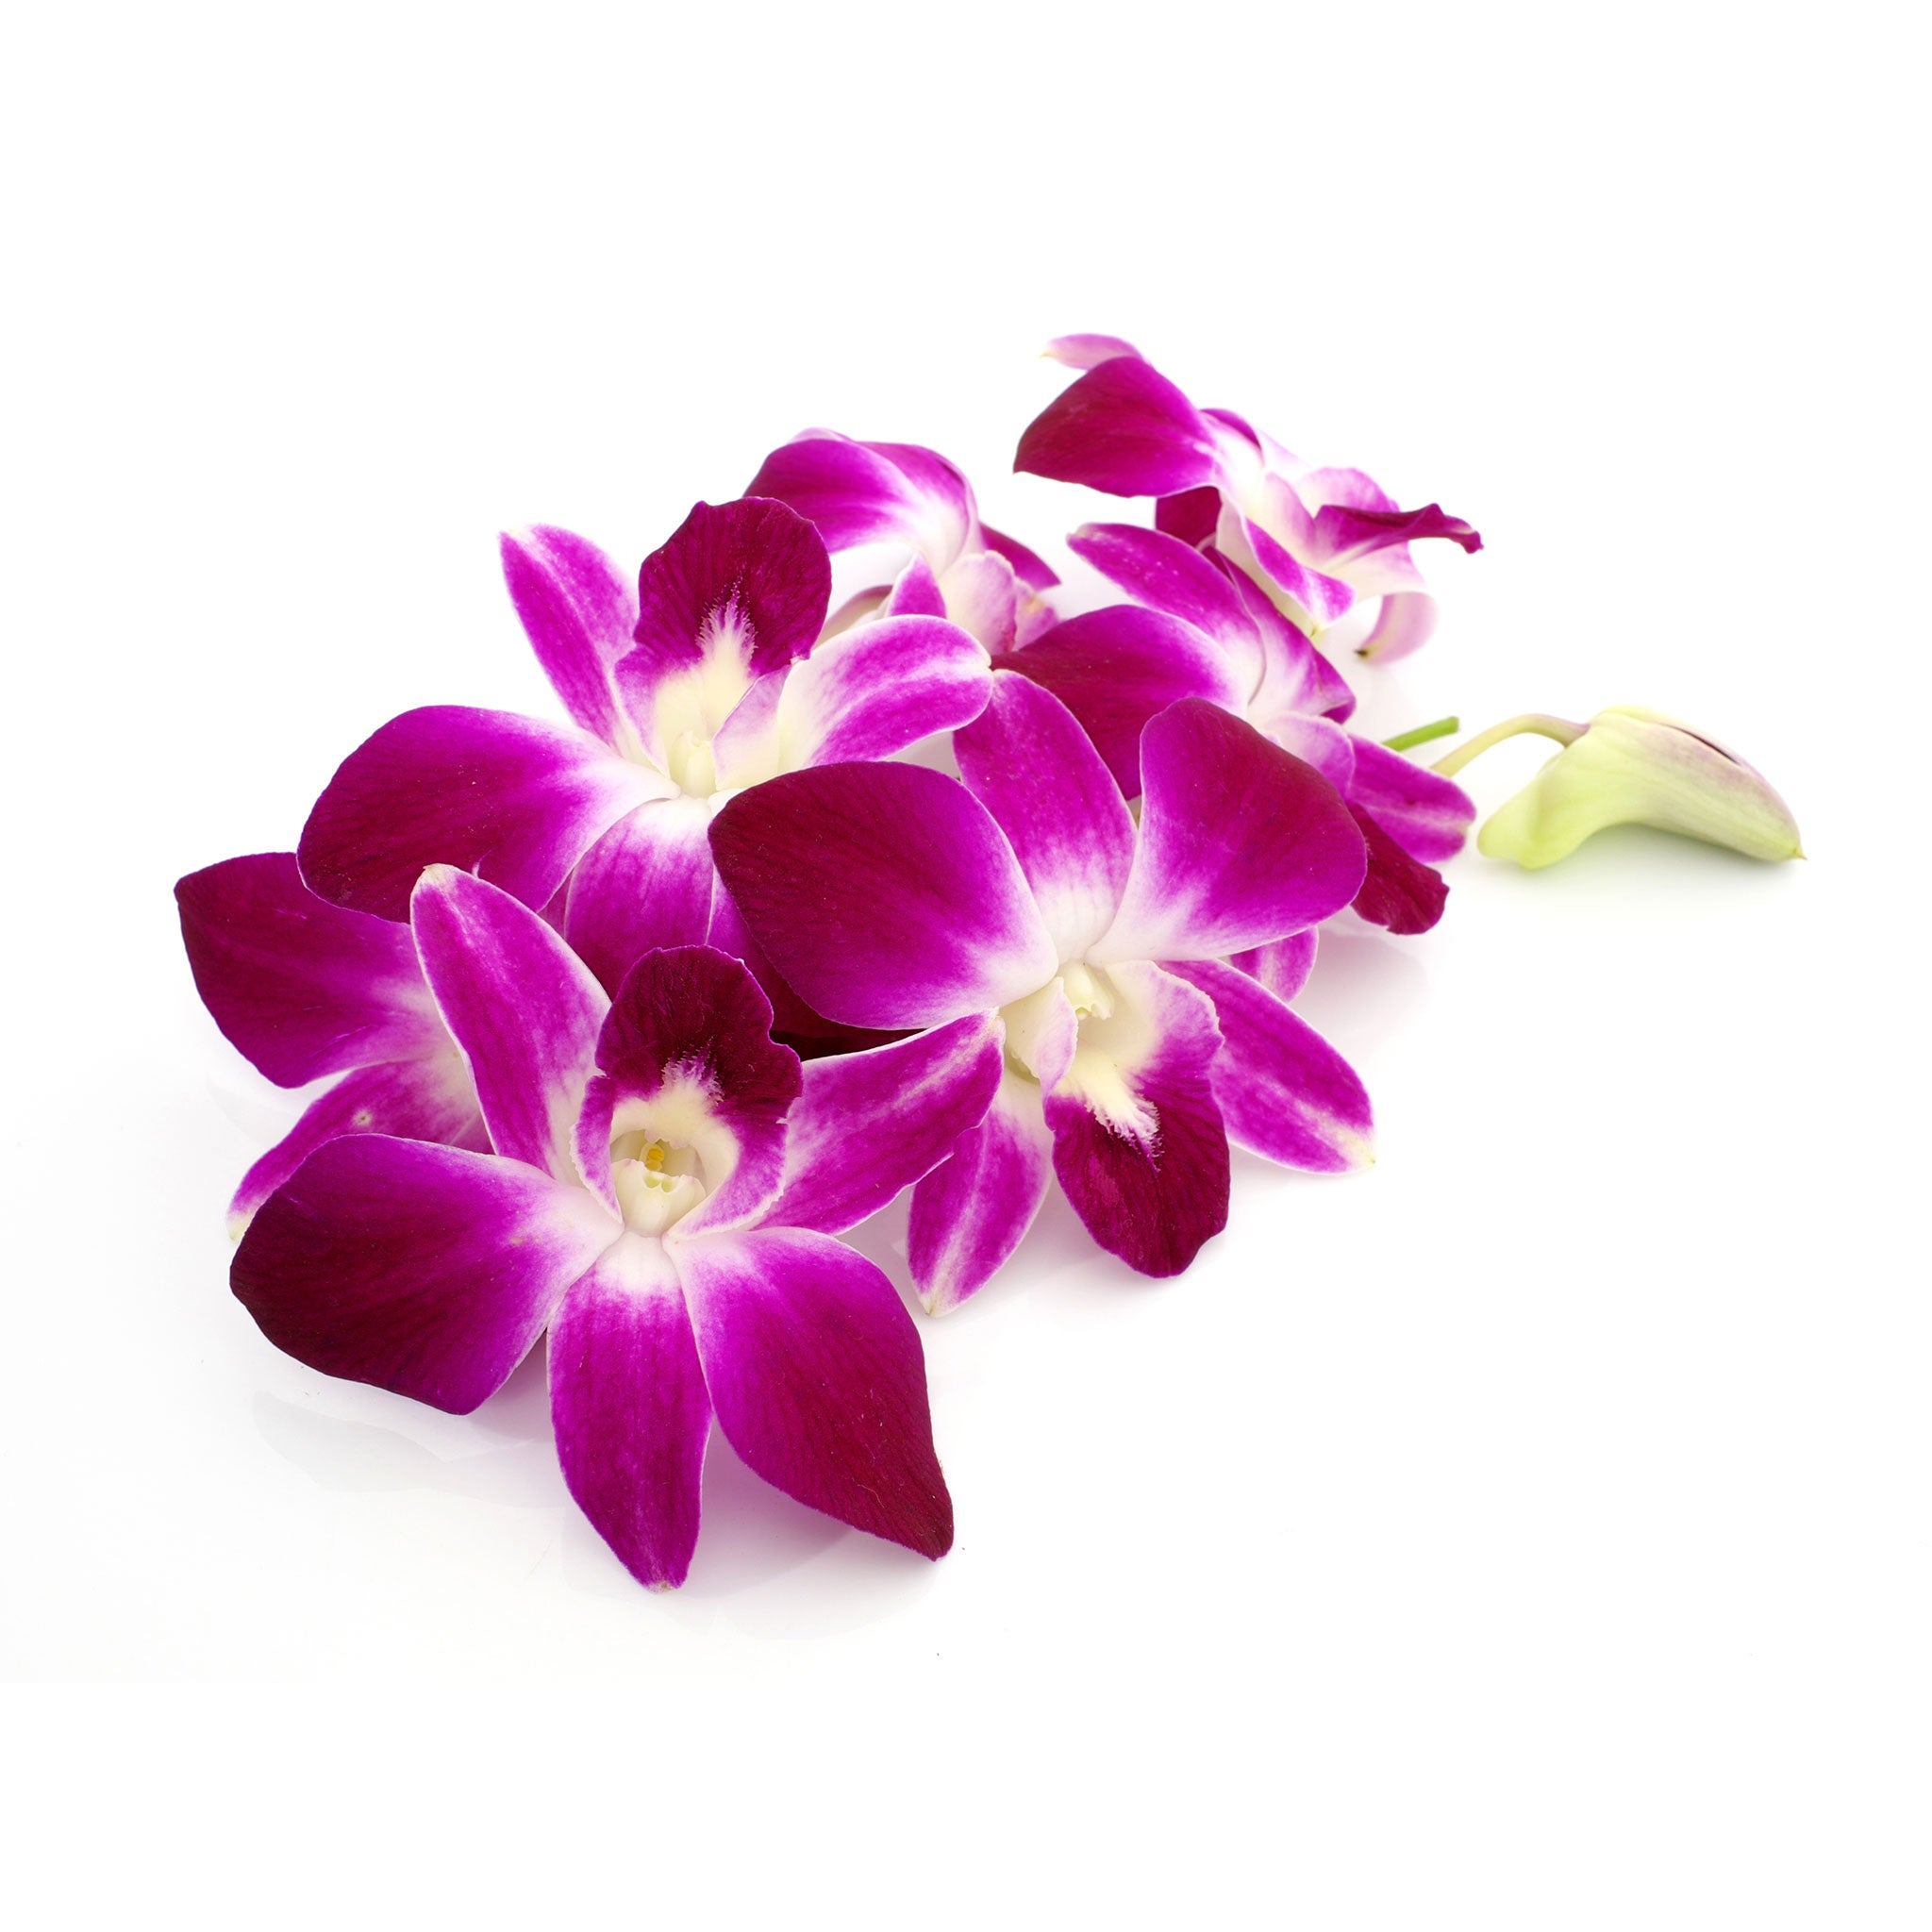 Fresh Thai orchid flowers